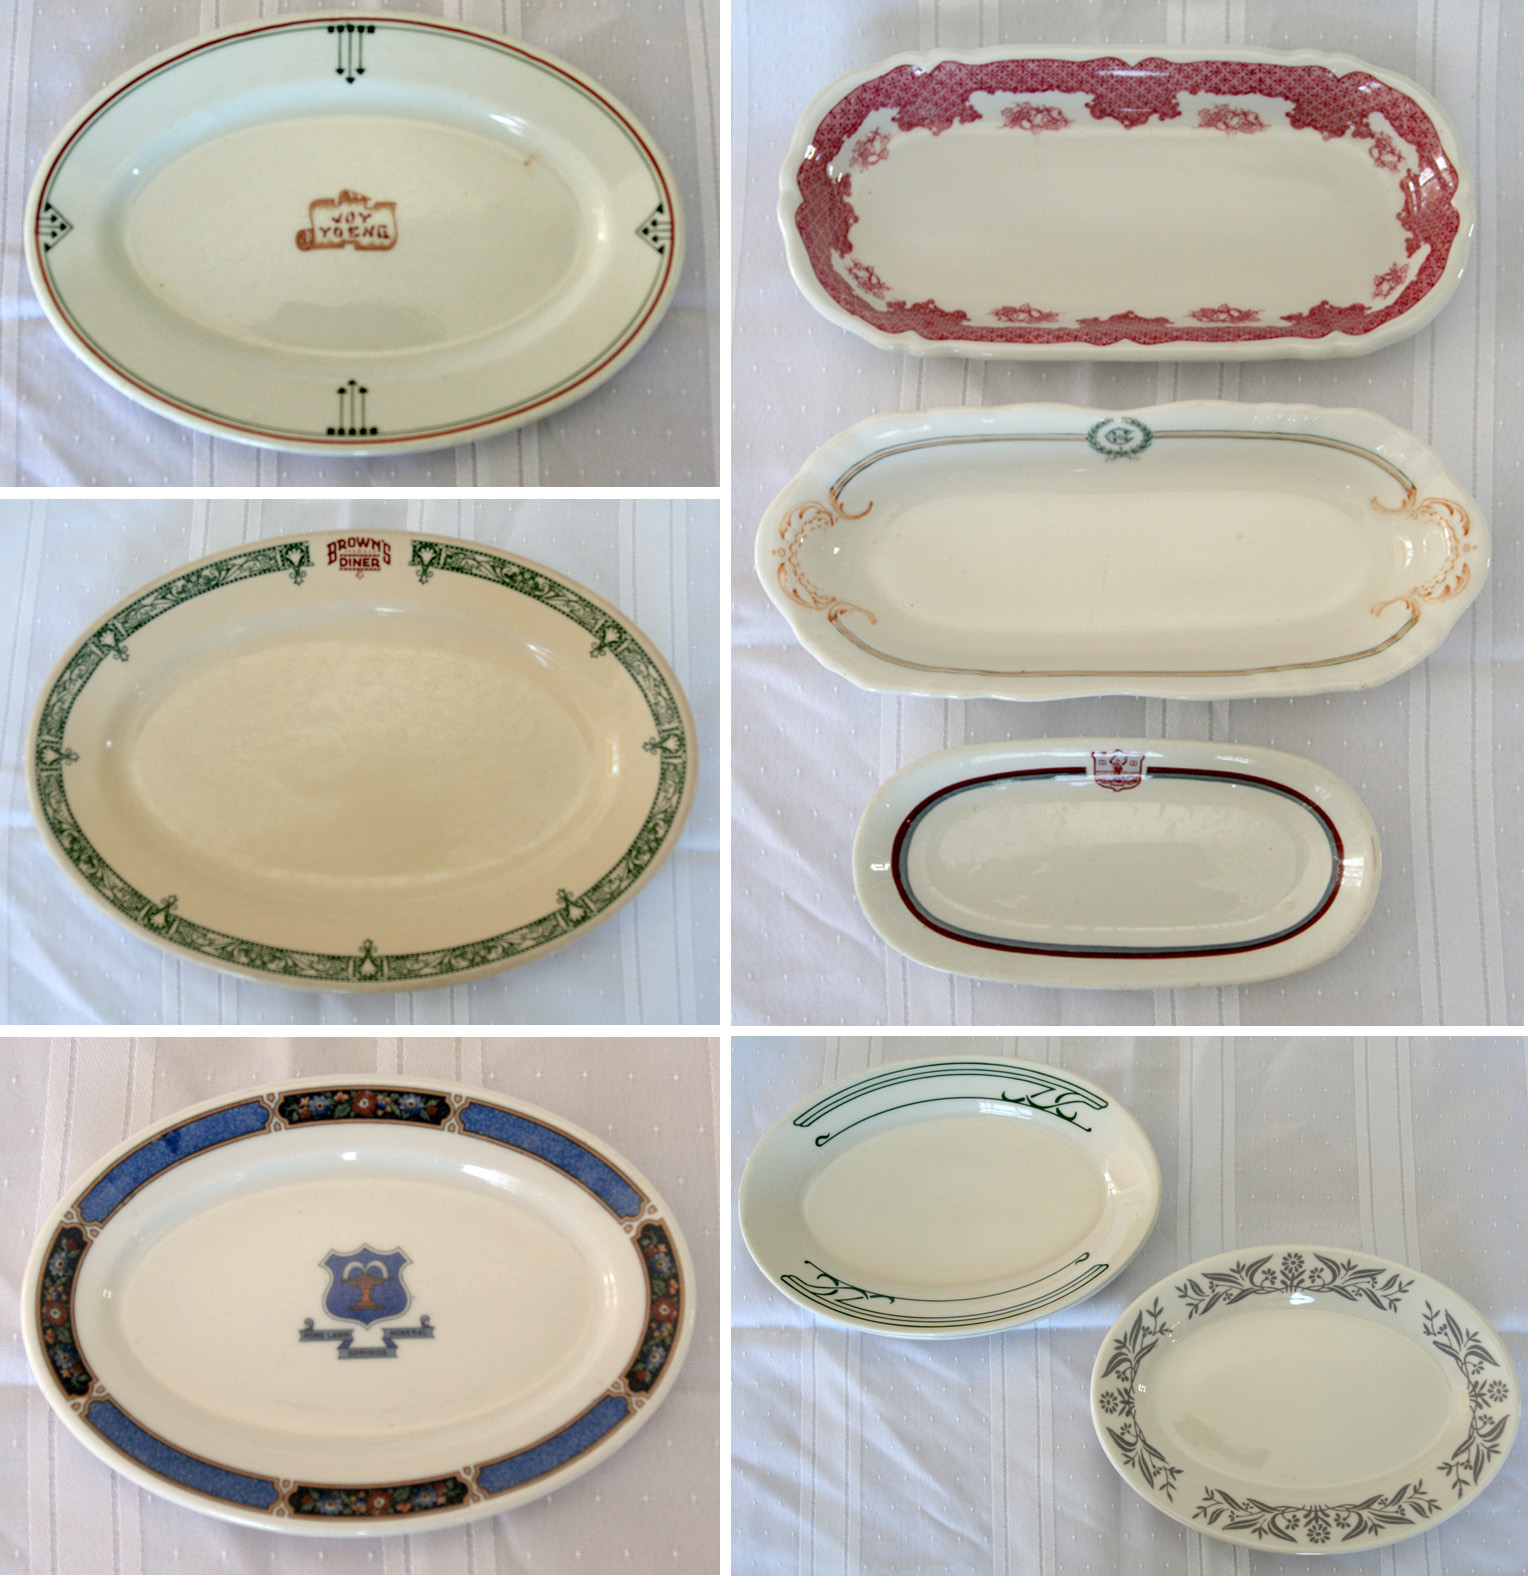 OVAL RESTAURANT PLATES  sc 1 st  I Love Collecting & I Love Collecting: OVAL RESTAURANT PLATES